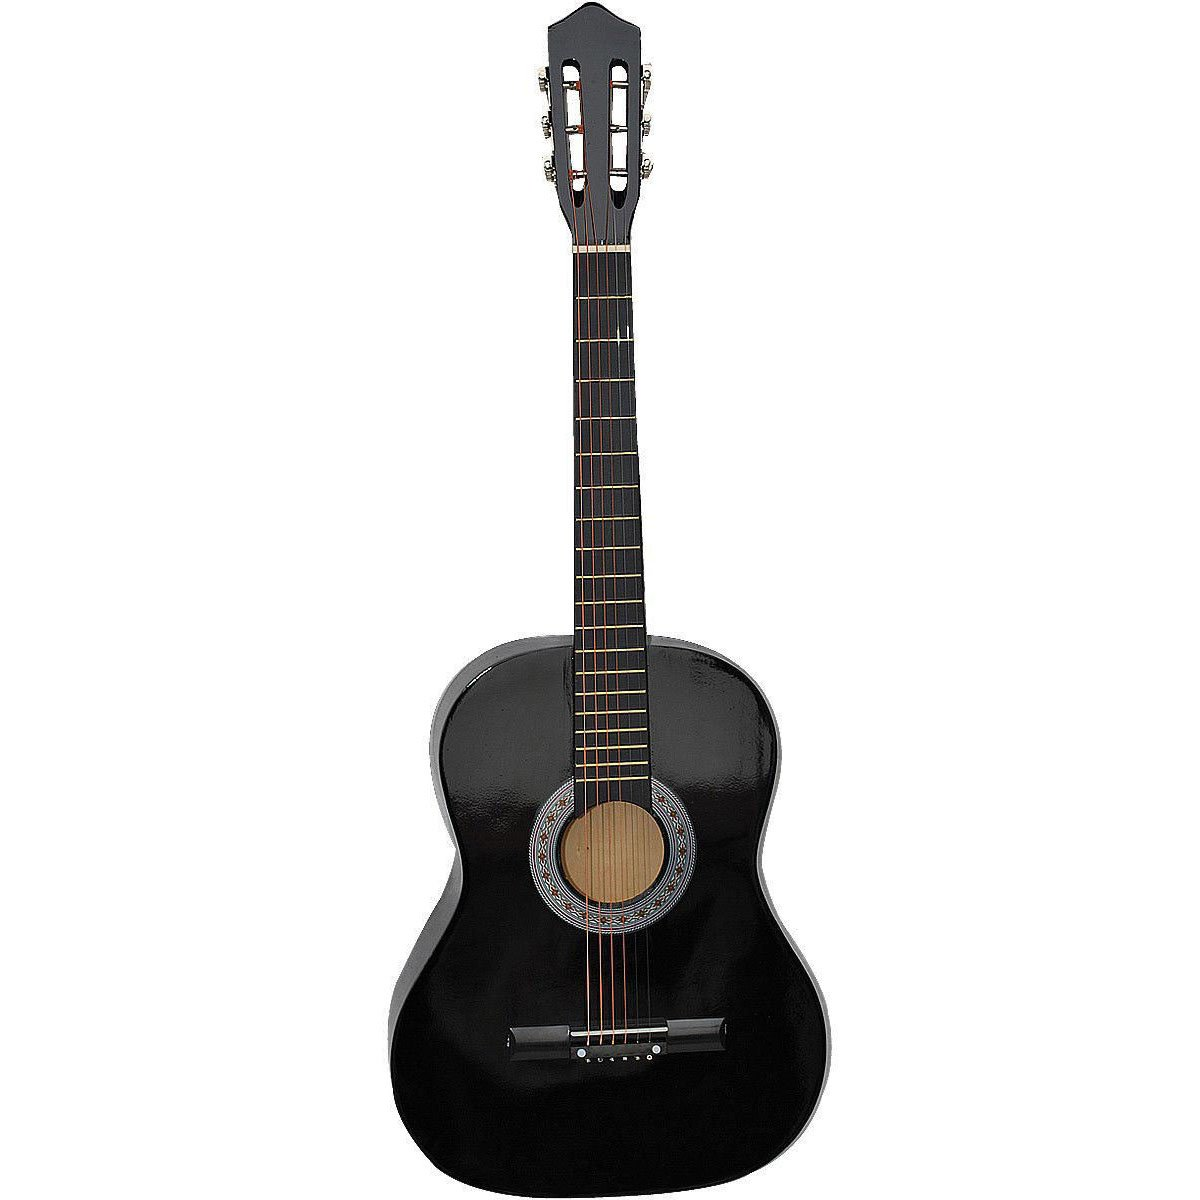 Super buy Acoustic Guitar W/Guitar Case Strap Tuner Pick For New Beginners Black Sup-9729